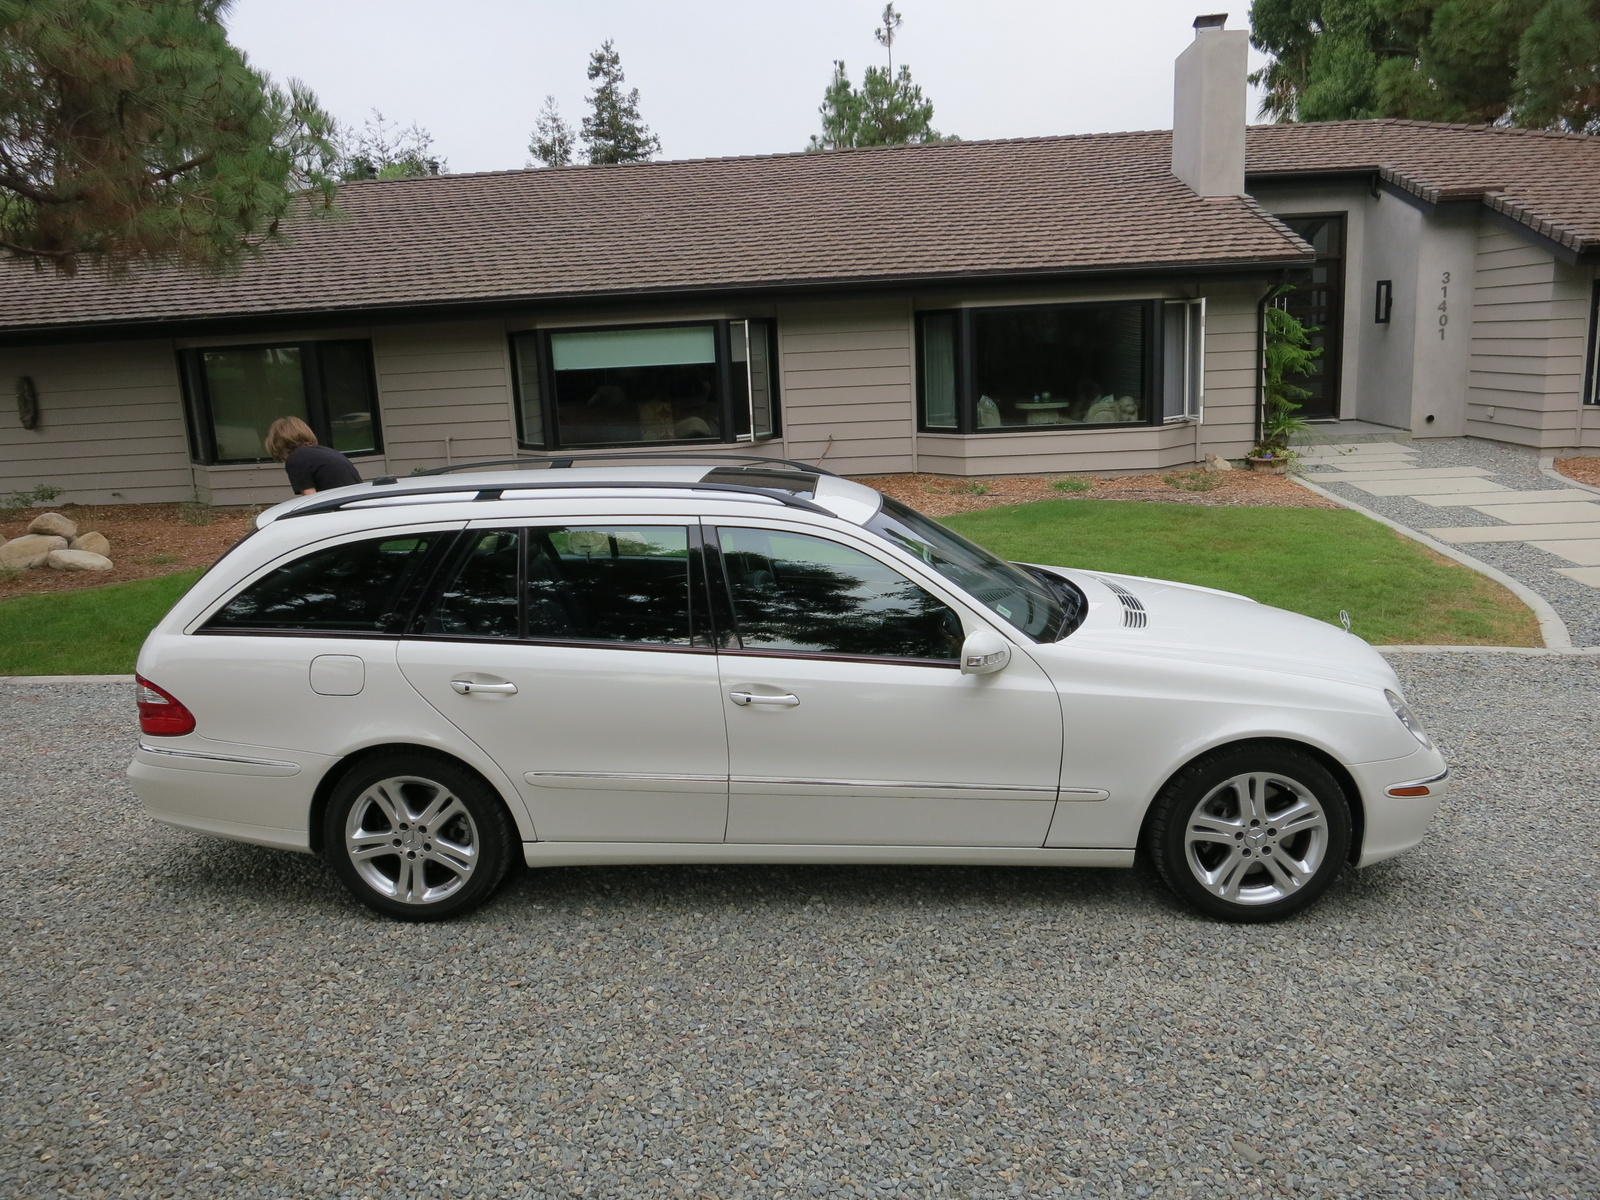 Picture of 2004 mercedes benz e class e500 4matic wagon for Mercedes benz e500 station wagon